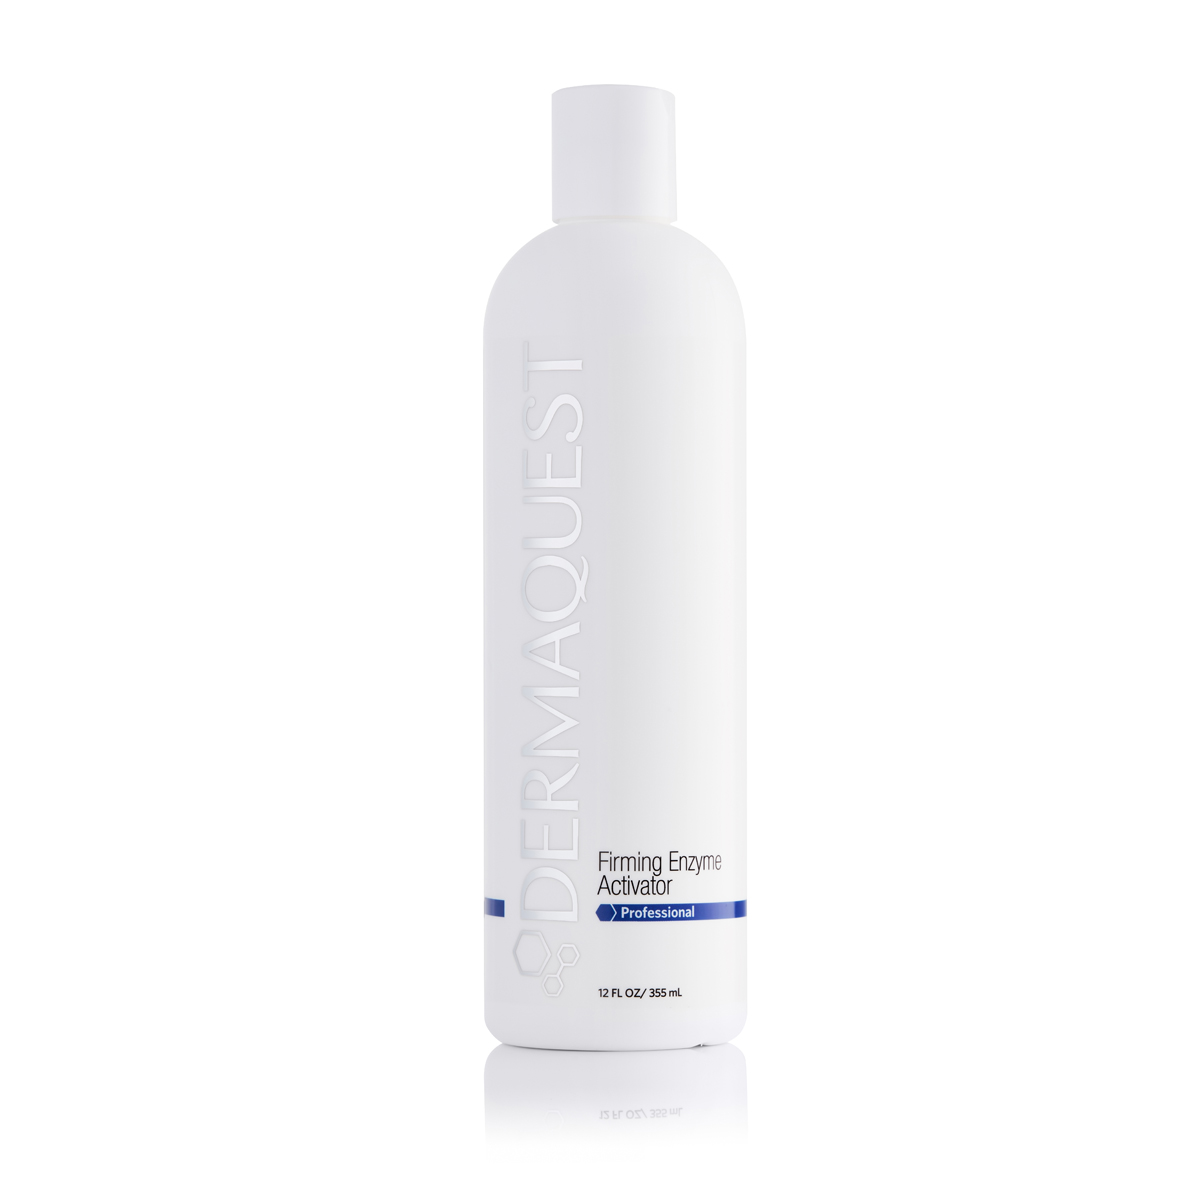 Firming Enzyme Activator – Professional